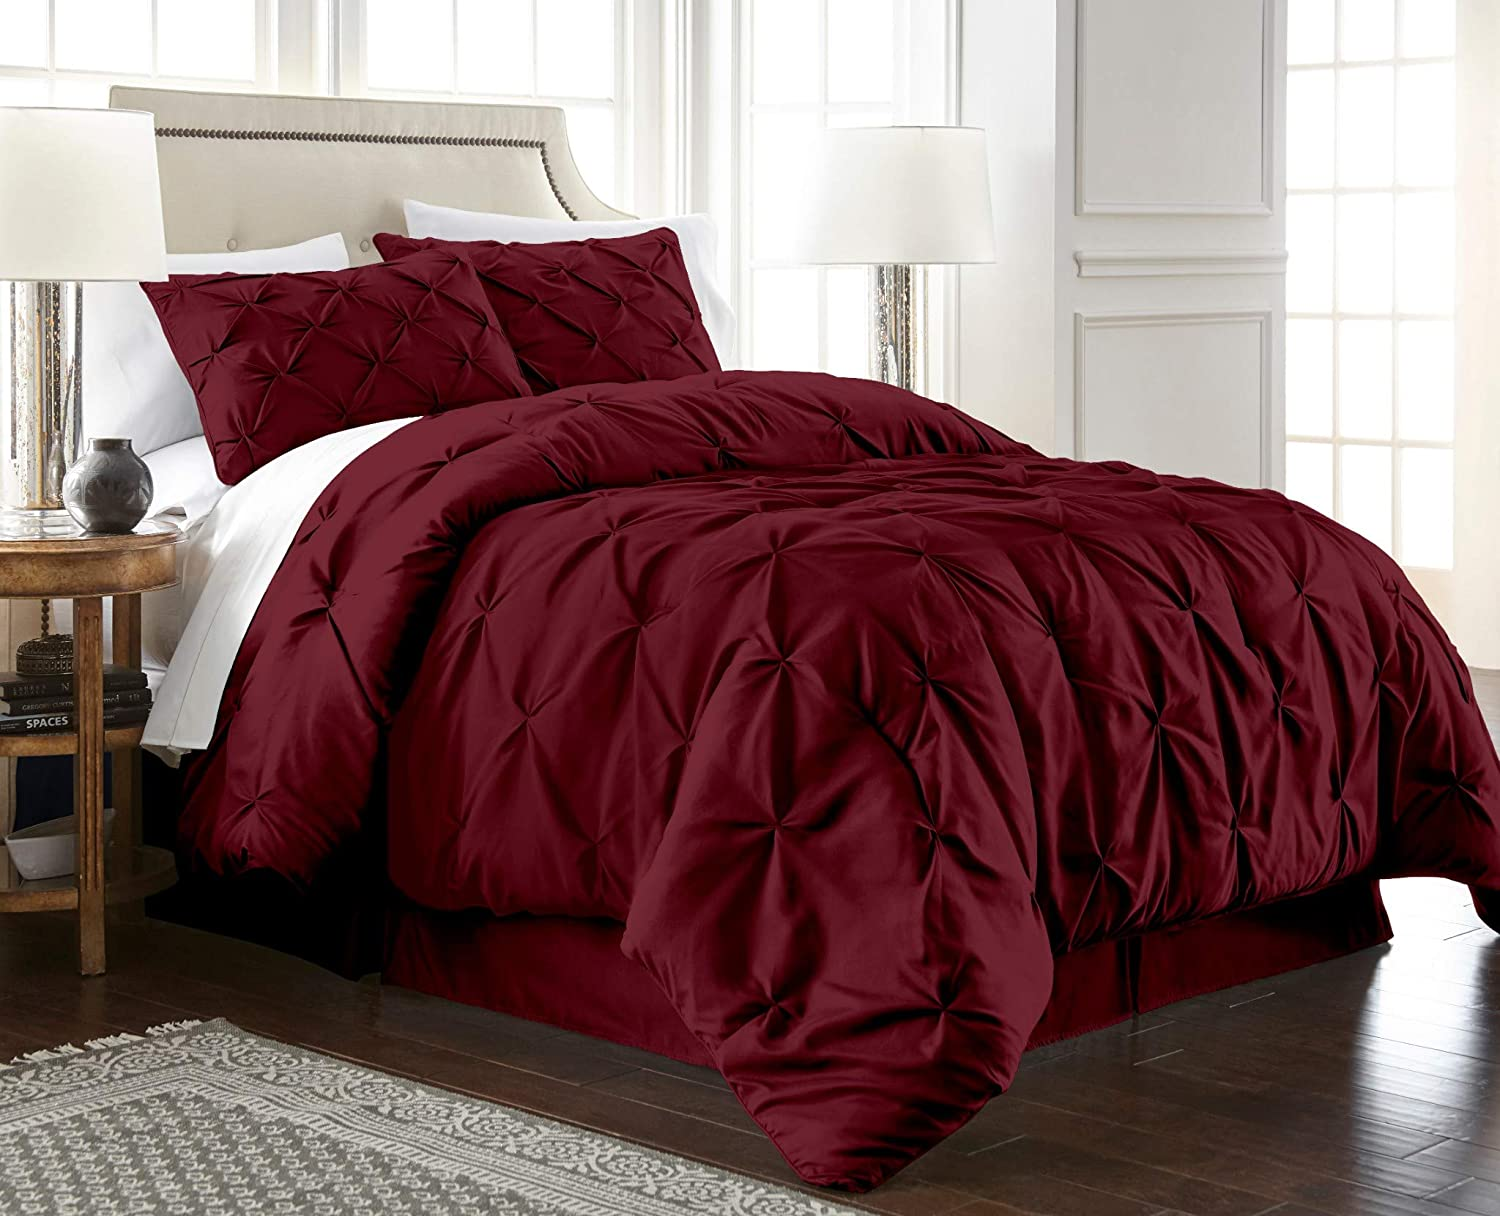 Chezmoi Collection Berlin 3-Piece Pintuck Pinch Pleat Bedding Comforter Set (Full, Burgundy)